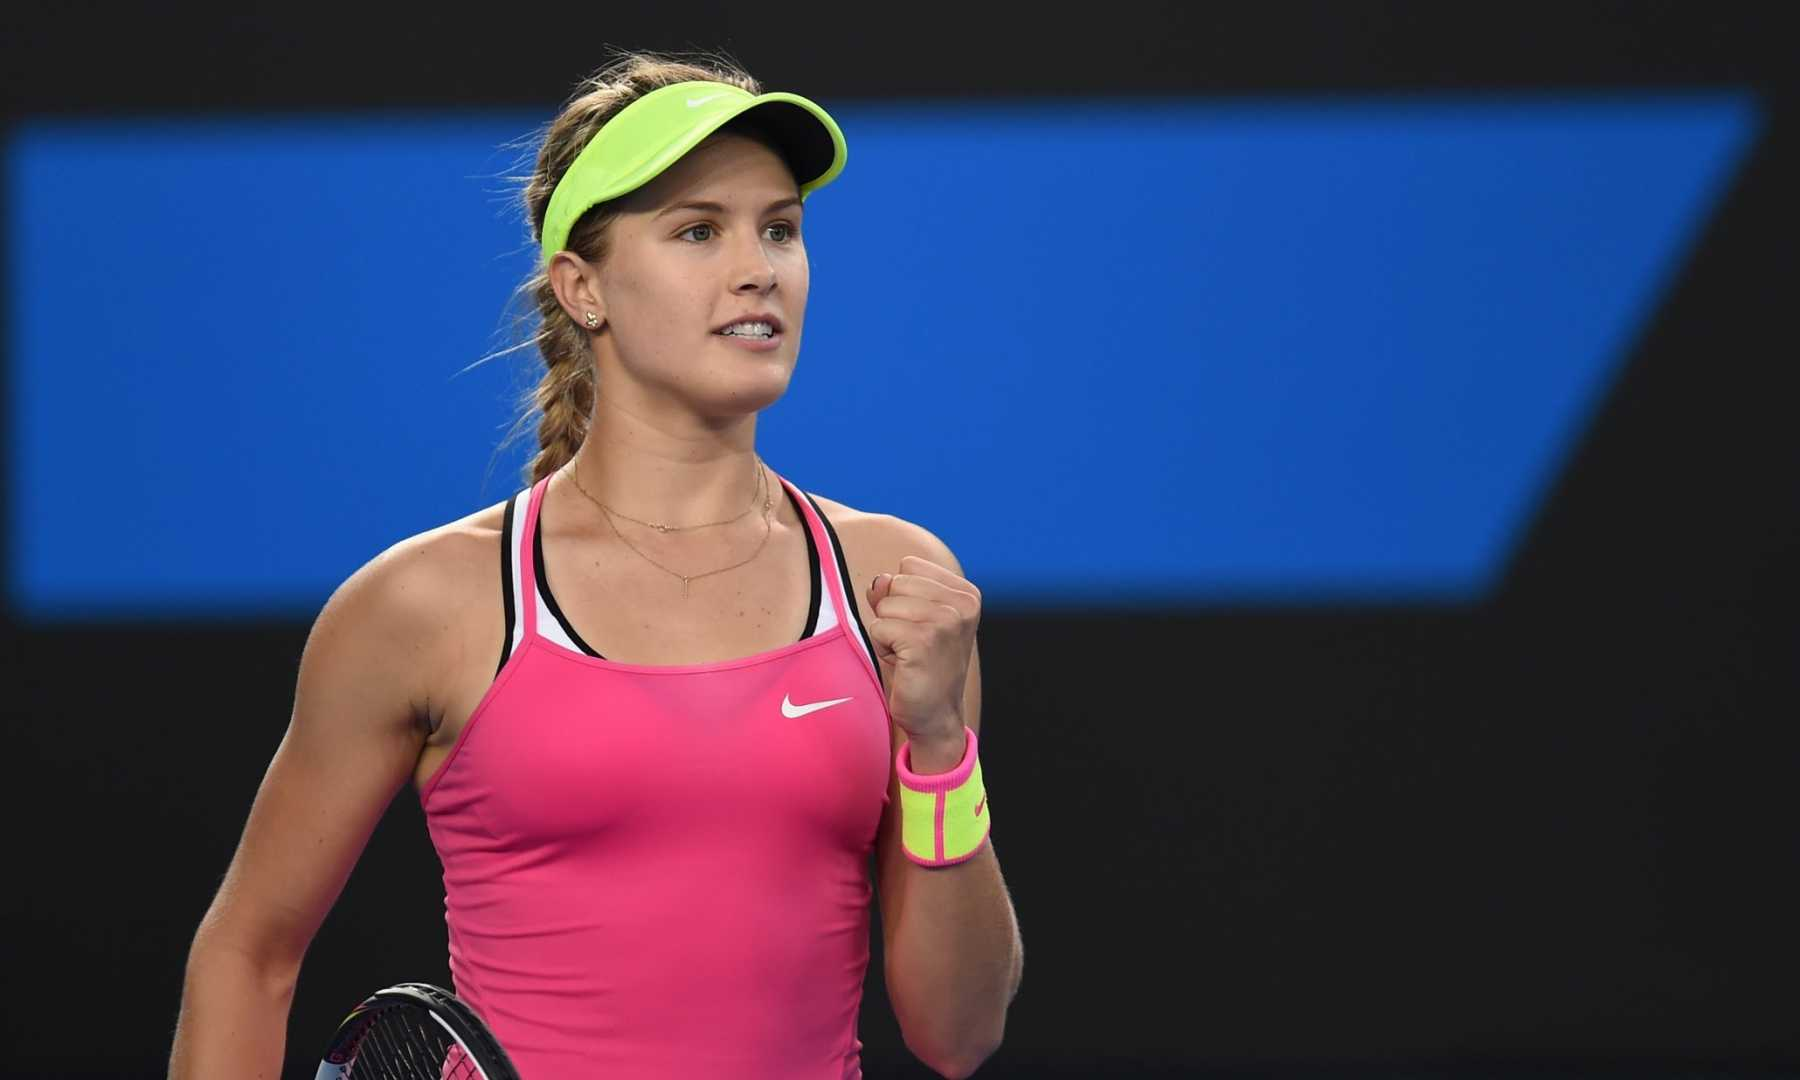 Eugenie Bouchard To Go On Fan Date After Super Bowl Bet | Eugenie Bouchard